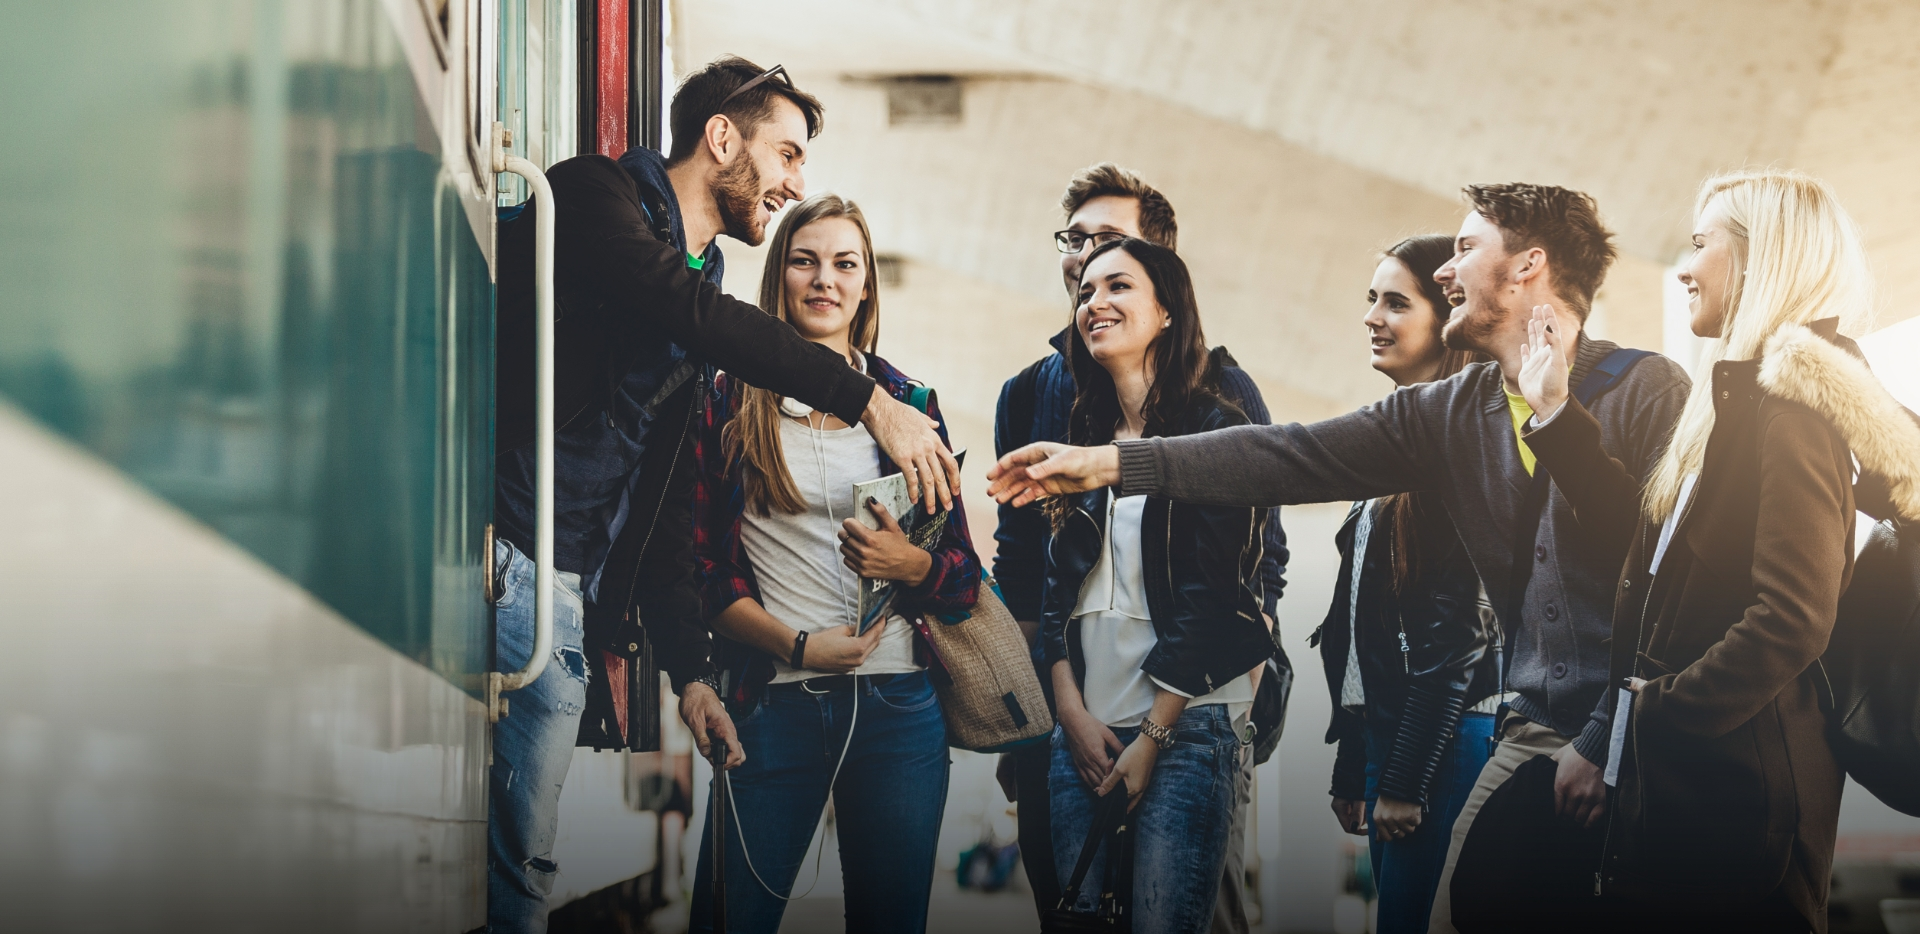 big group of young adults gather at train station to bid a happy farewell to friend who is leaving